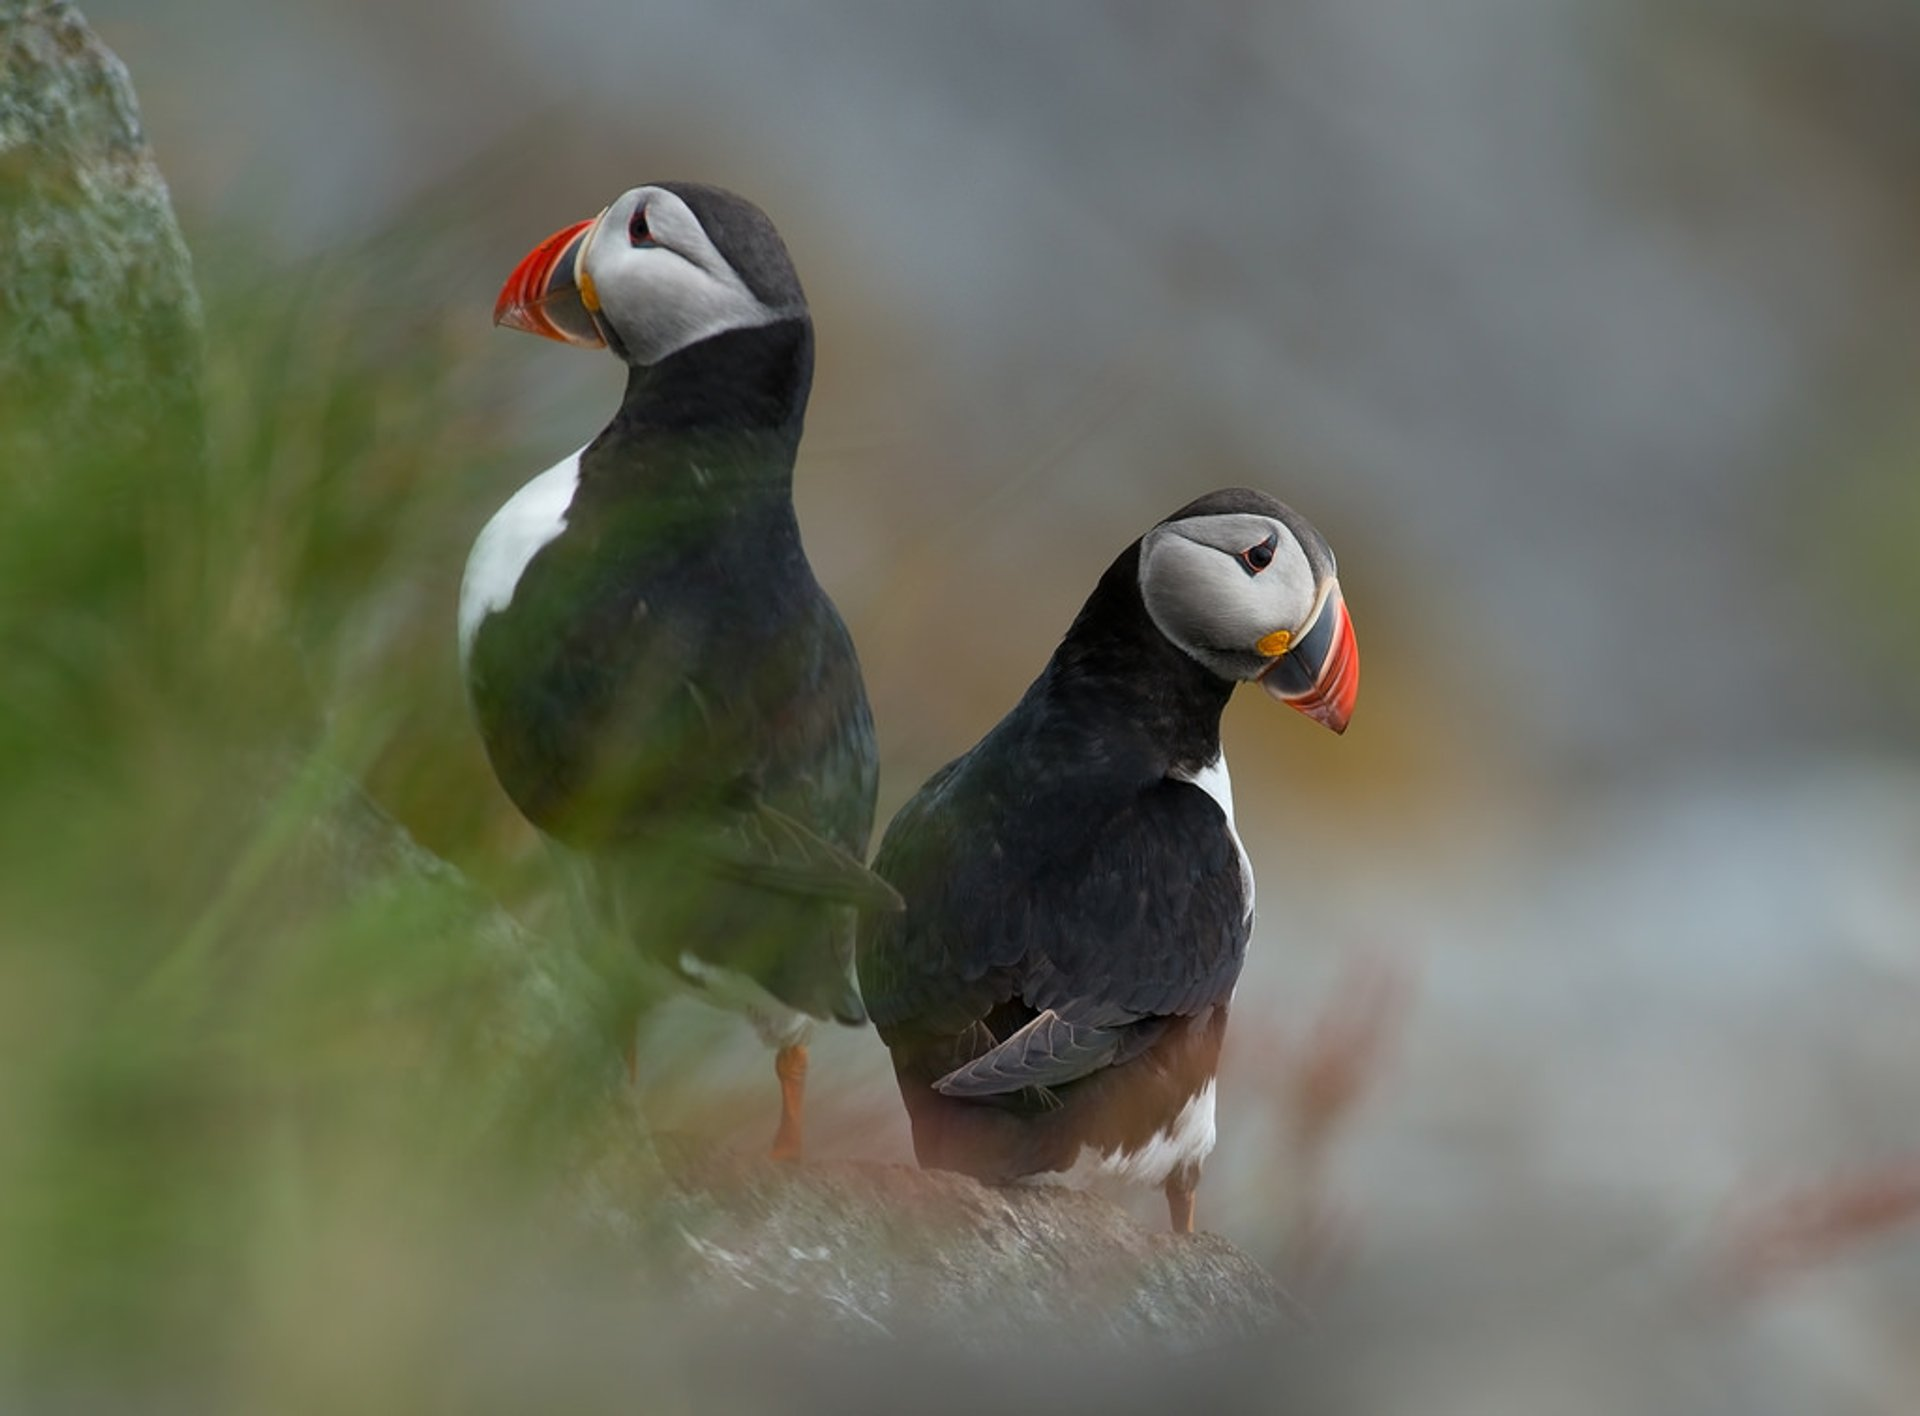 Atlantic Puffins in Karmøy, Norway 2019